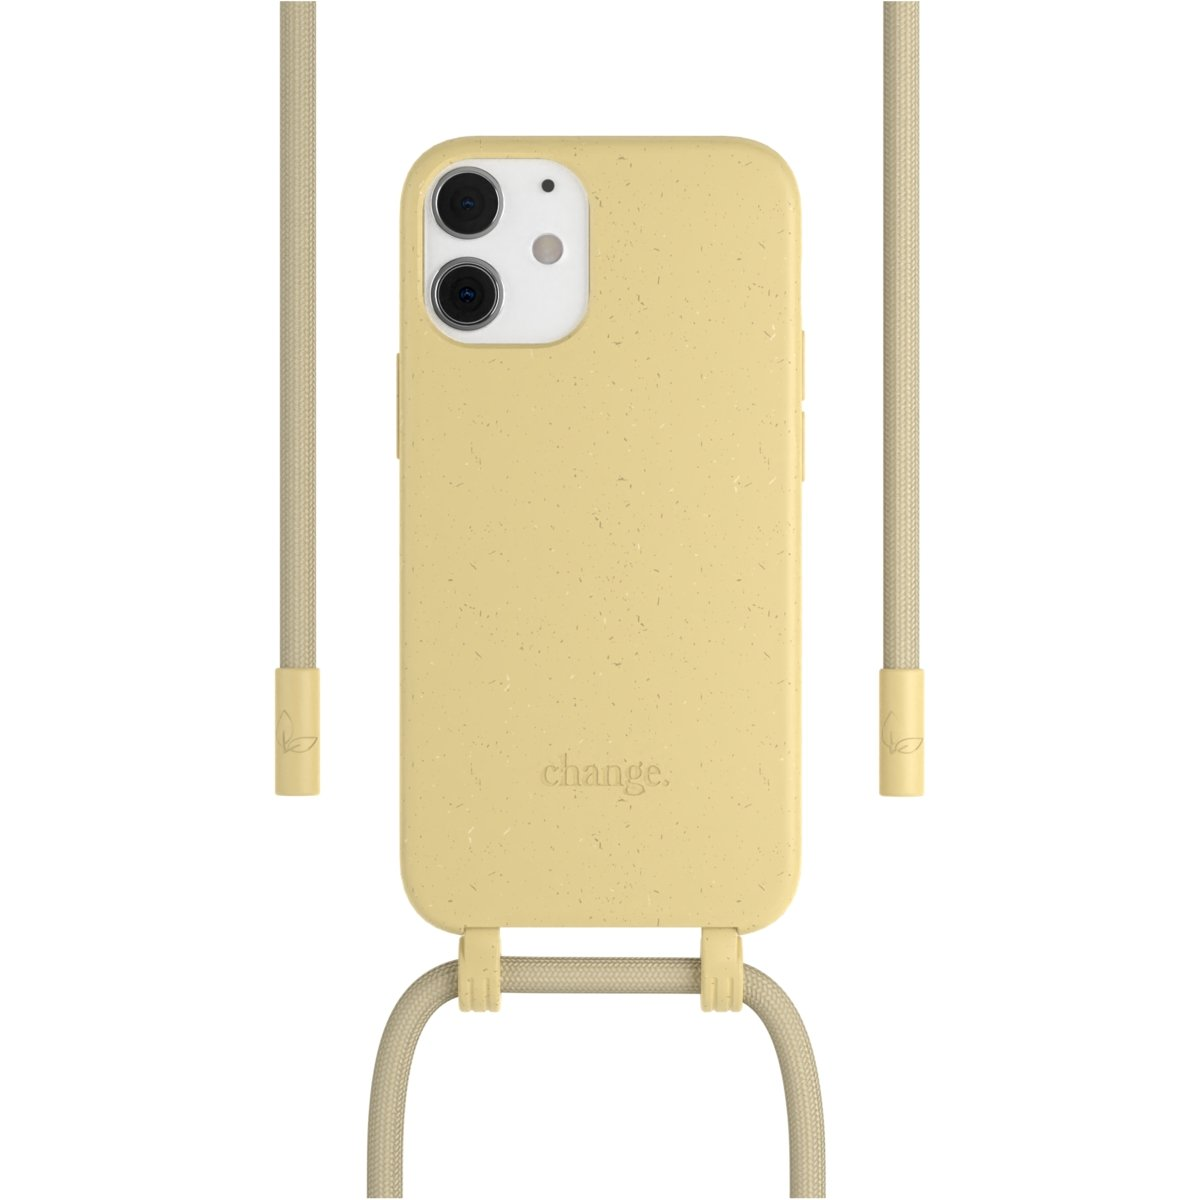 Woodcessories Change Case AM iPhone 12 Mini - yellow